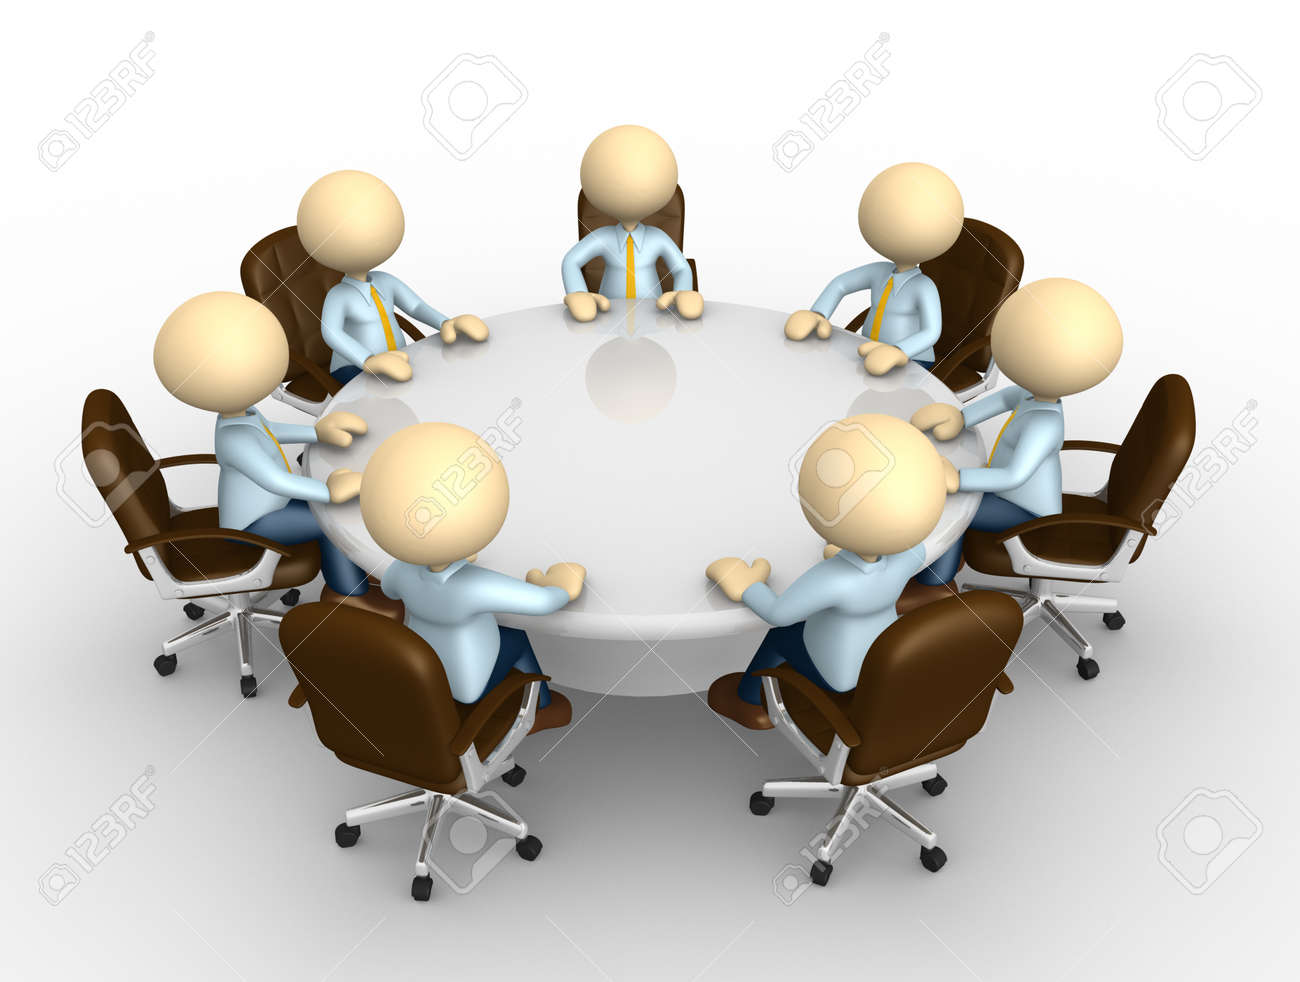 3d People   Man, Person Sitting At A Round Table And Having Business Meeting  Stock